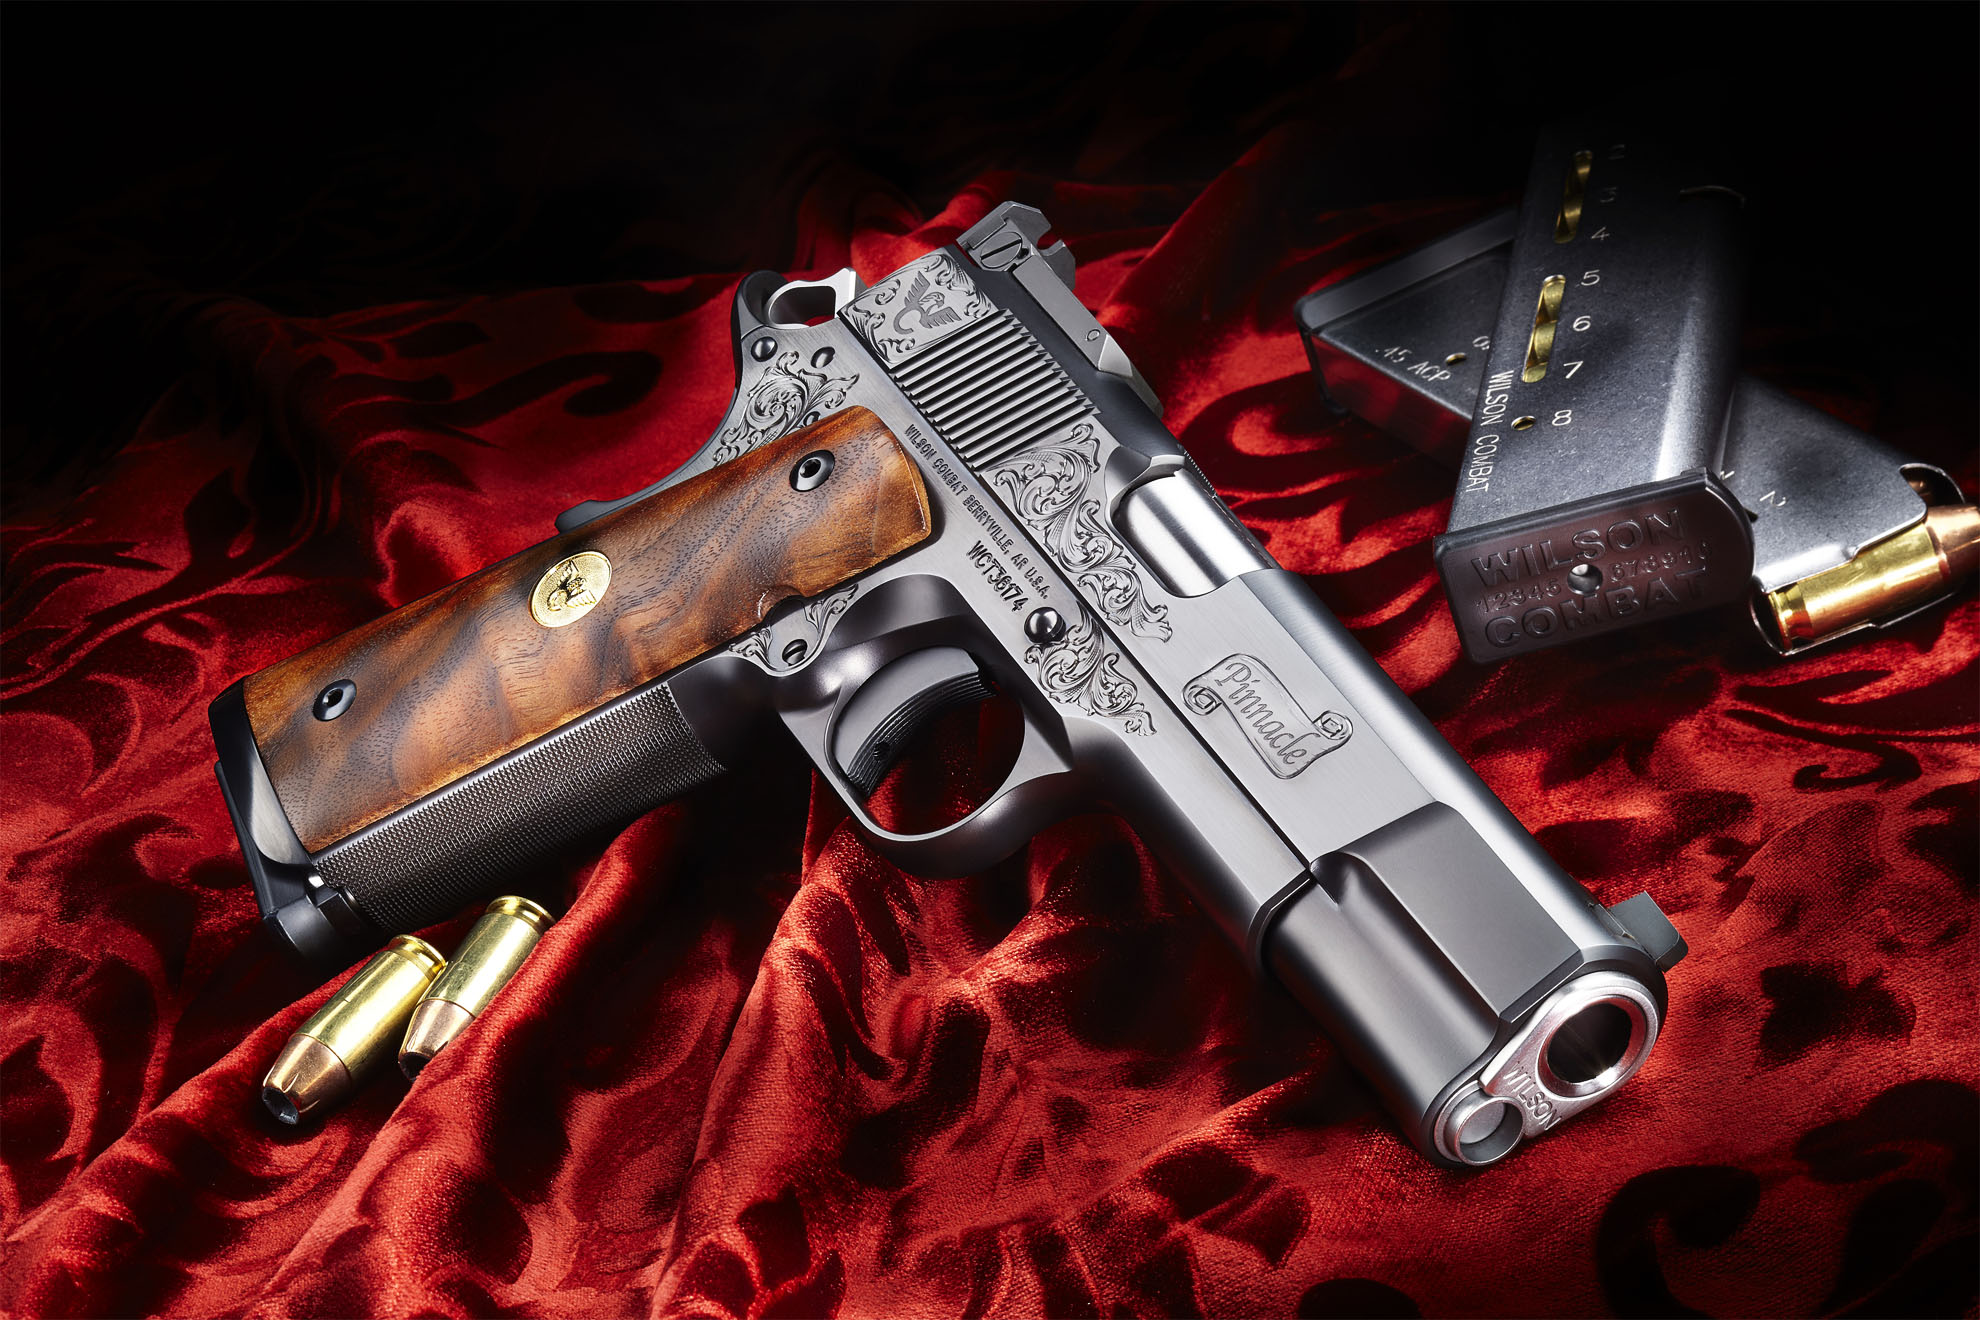 Customization Wilson Combat - Construction invoice template free download largest online gun store